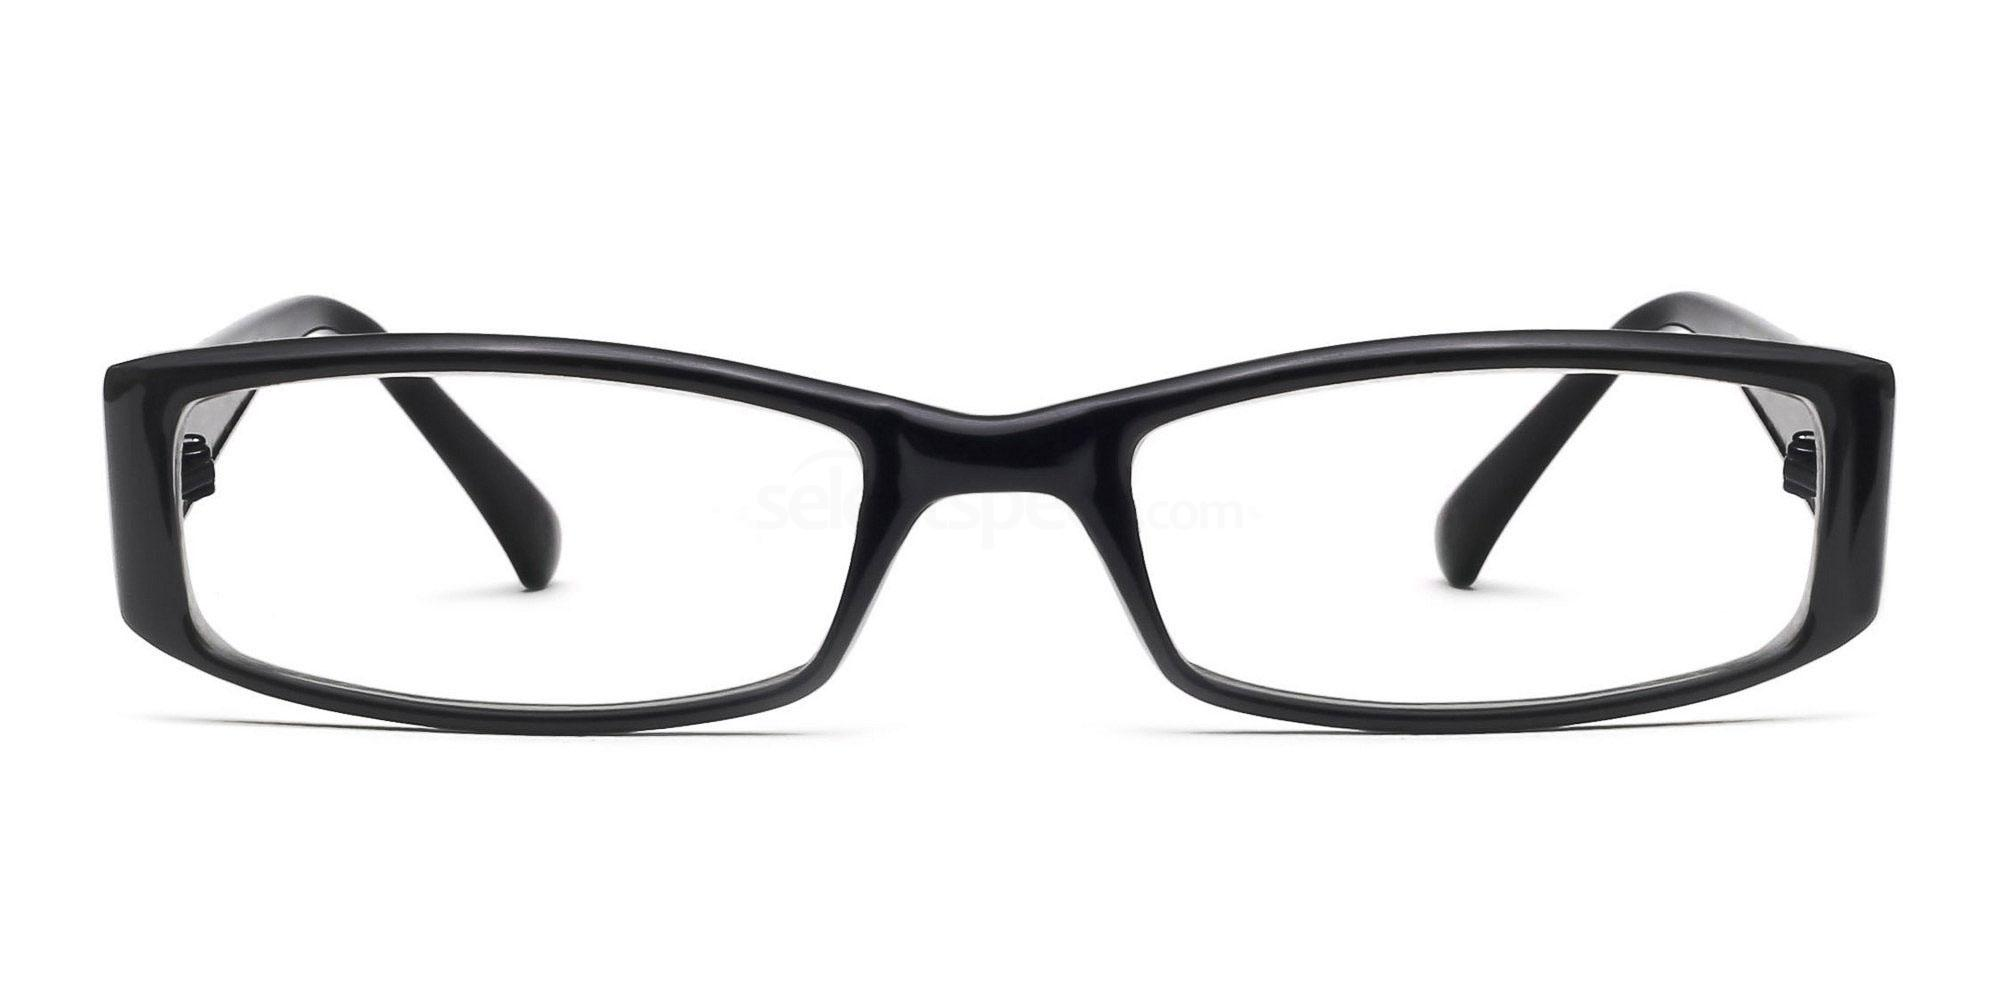 C1 P2251 - Black Glasses, SelectSpecs